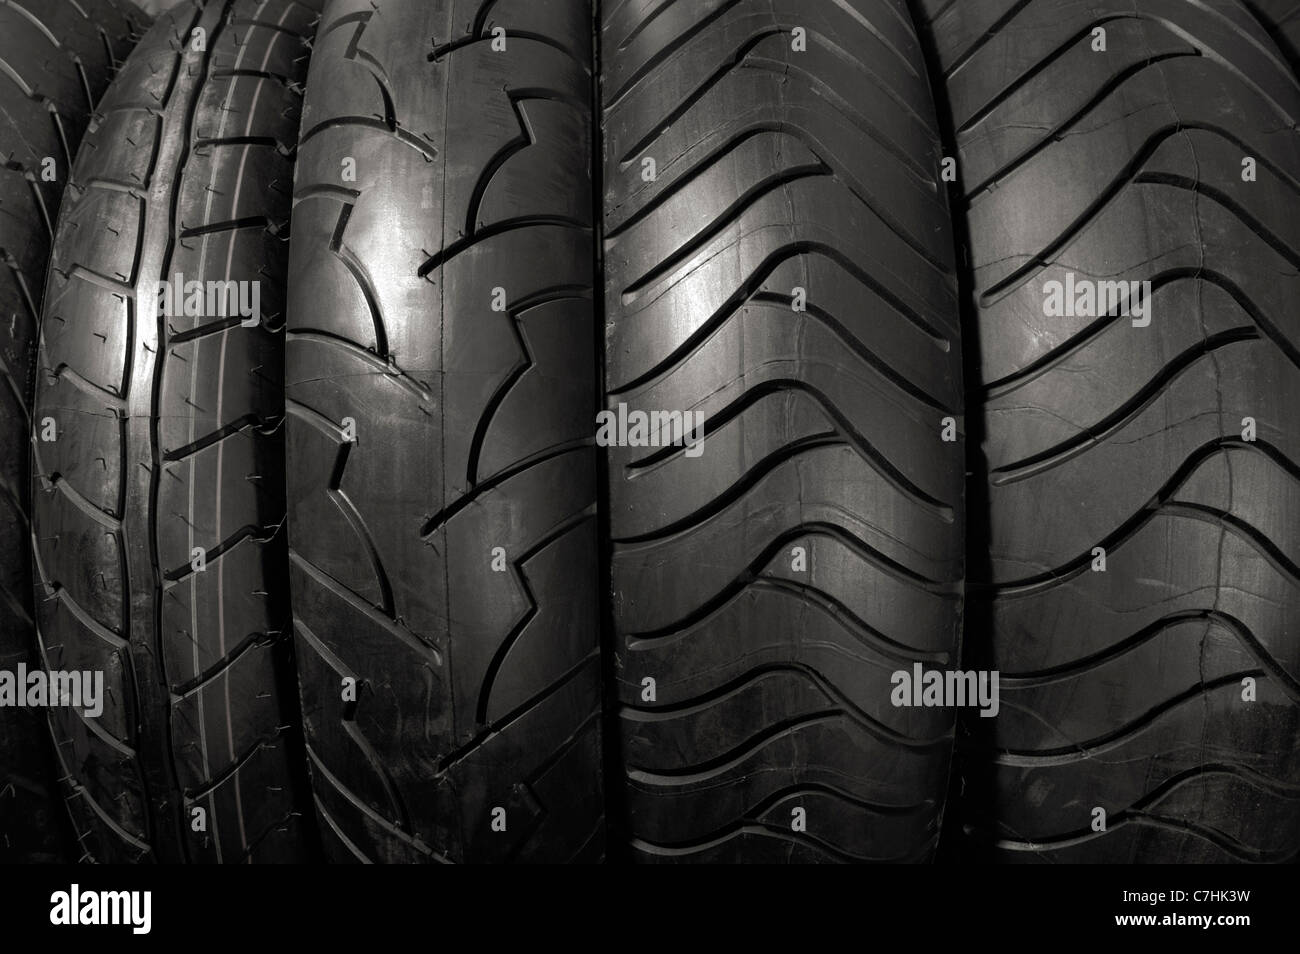 Stock photo of Racing motorcycle tires Horizontal abstract close-up texture background - Stock Image